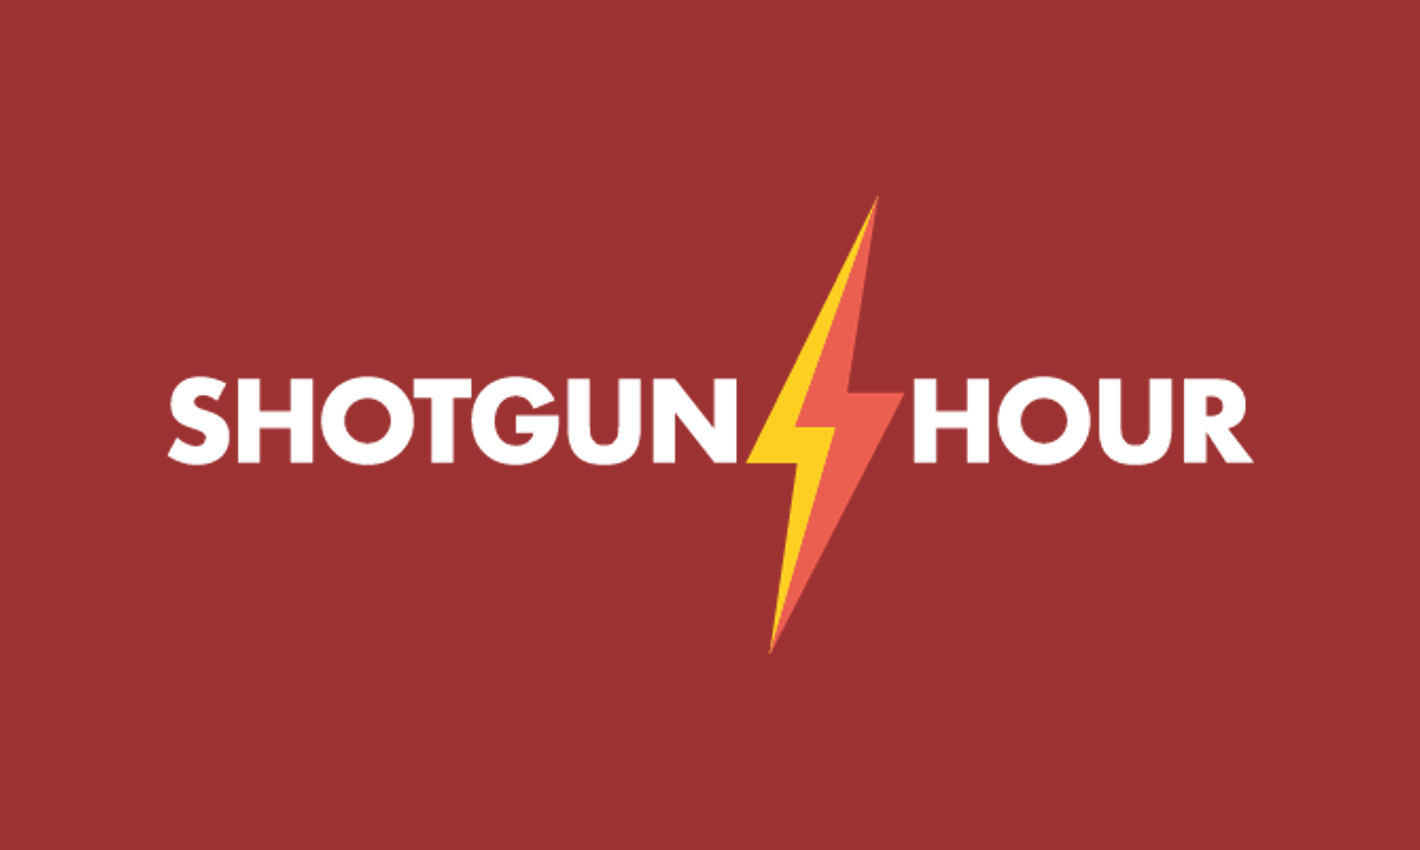 ShotgunHour, la start-up qui révolutionne le sport